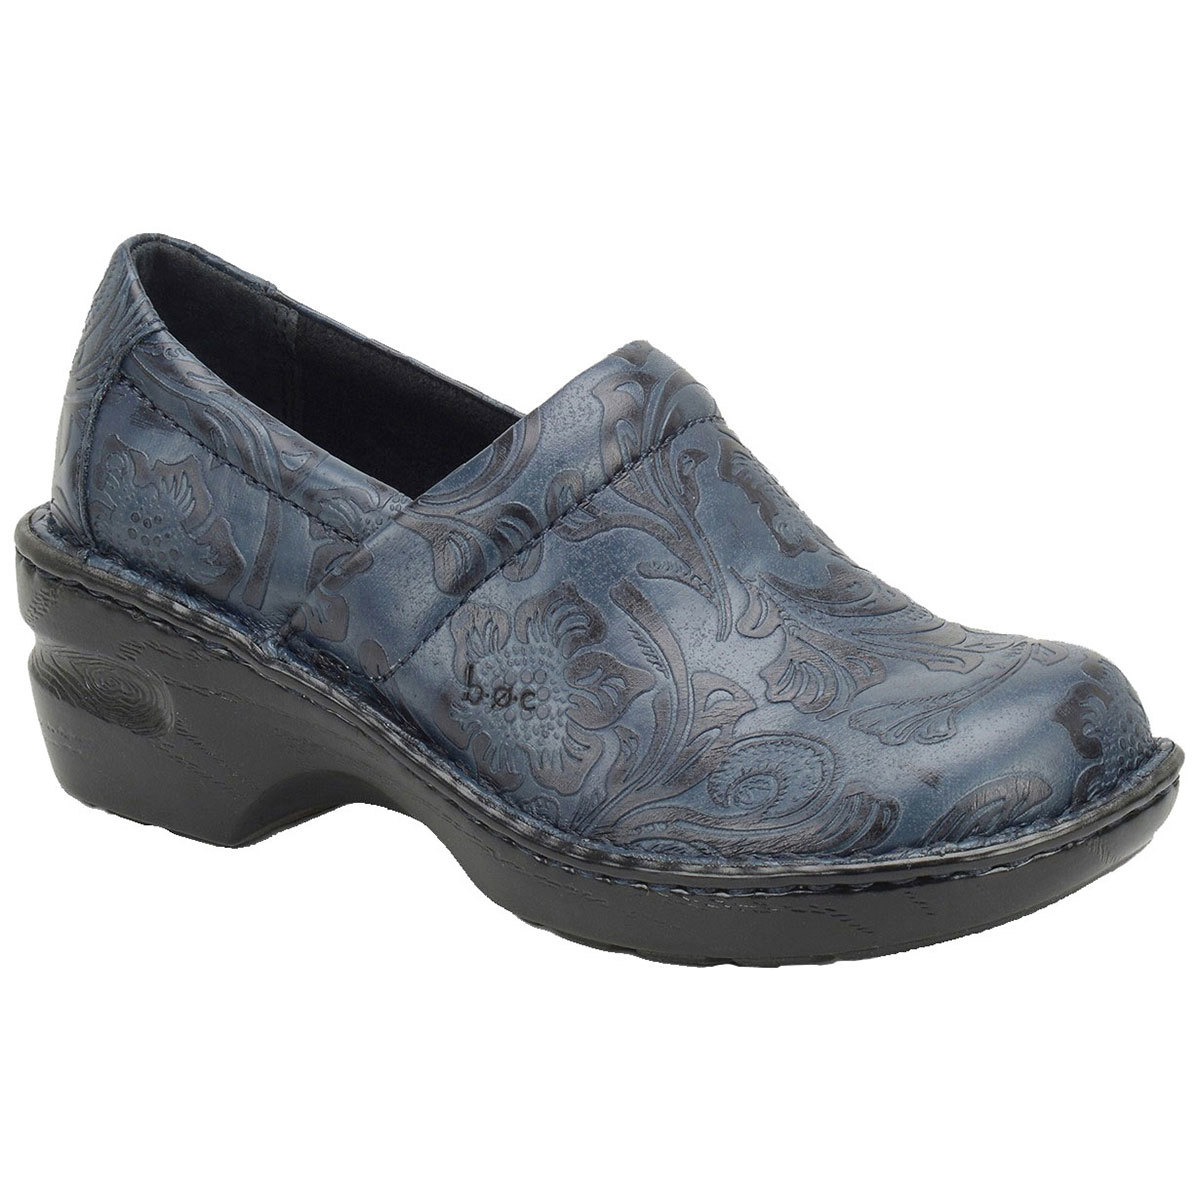 B.o.c. Women's Peggy Tooled Leather Clogs, Wide - Blue, 8